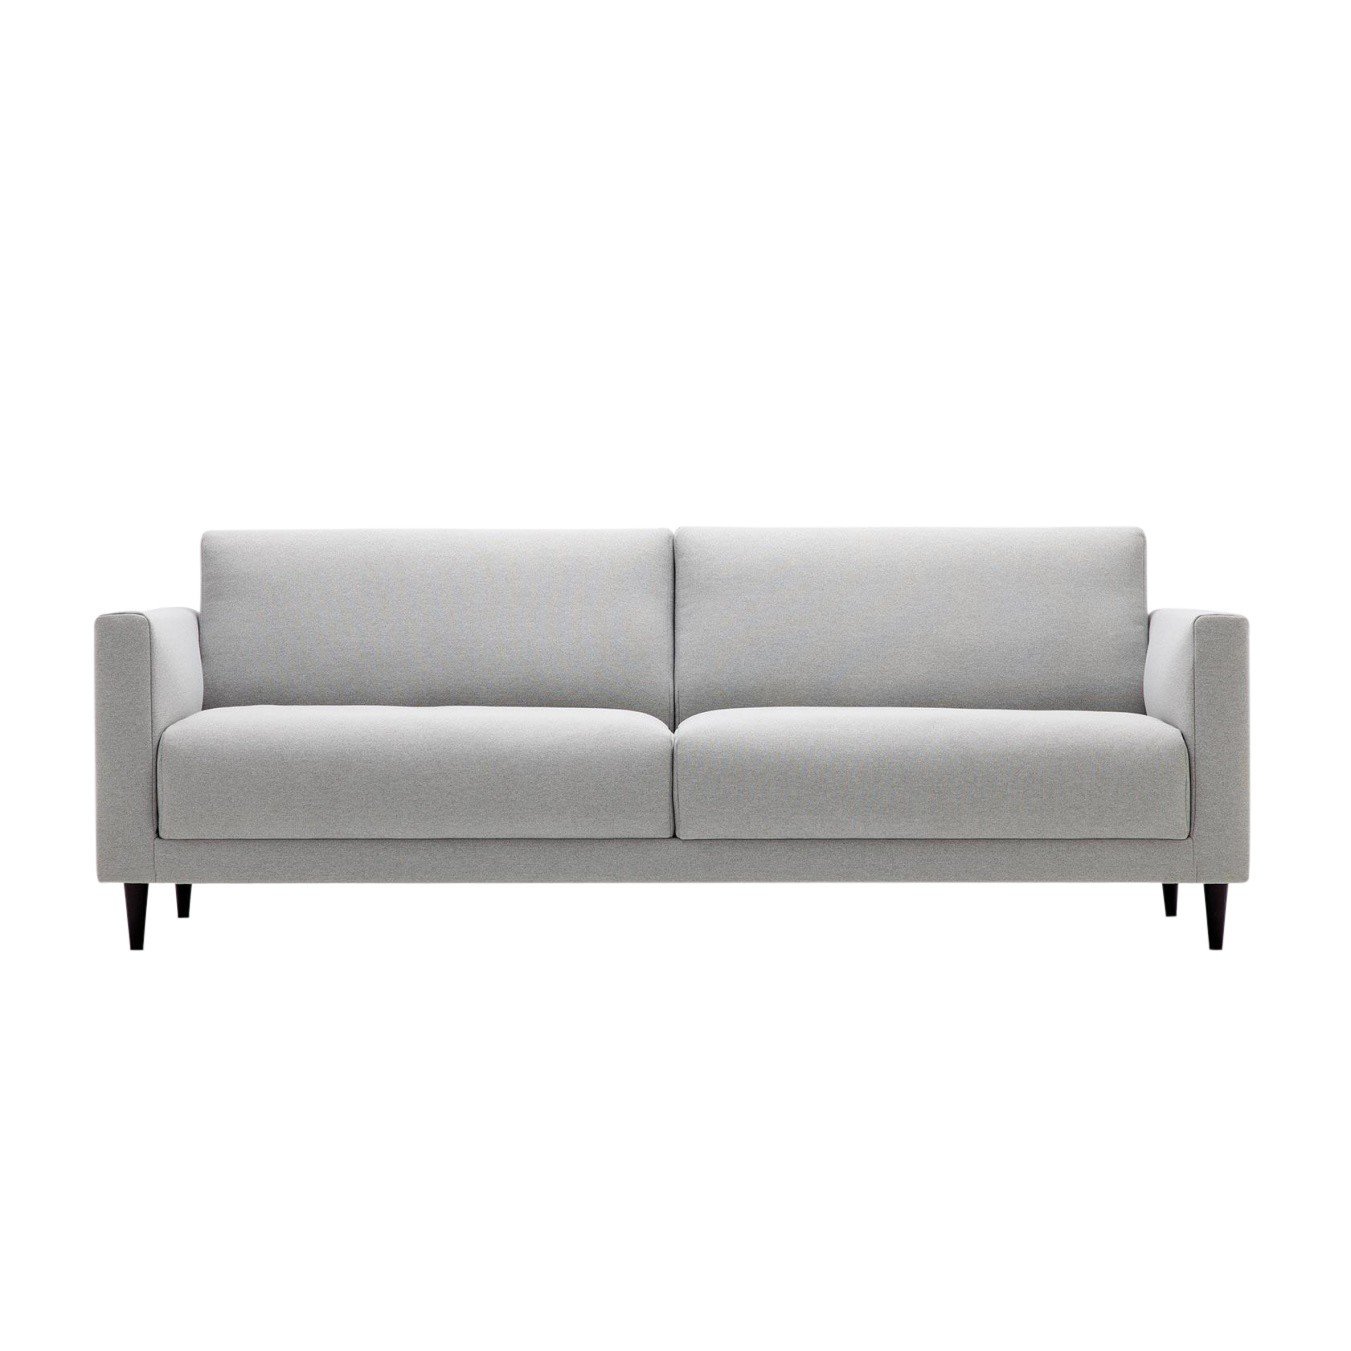 Rolf Benz Couch Freistil 141 3 Seater Sofa Frame Wood